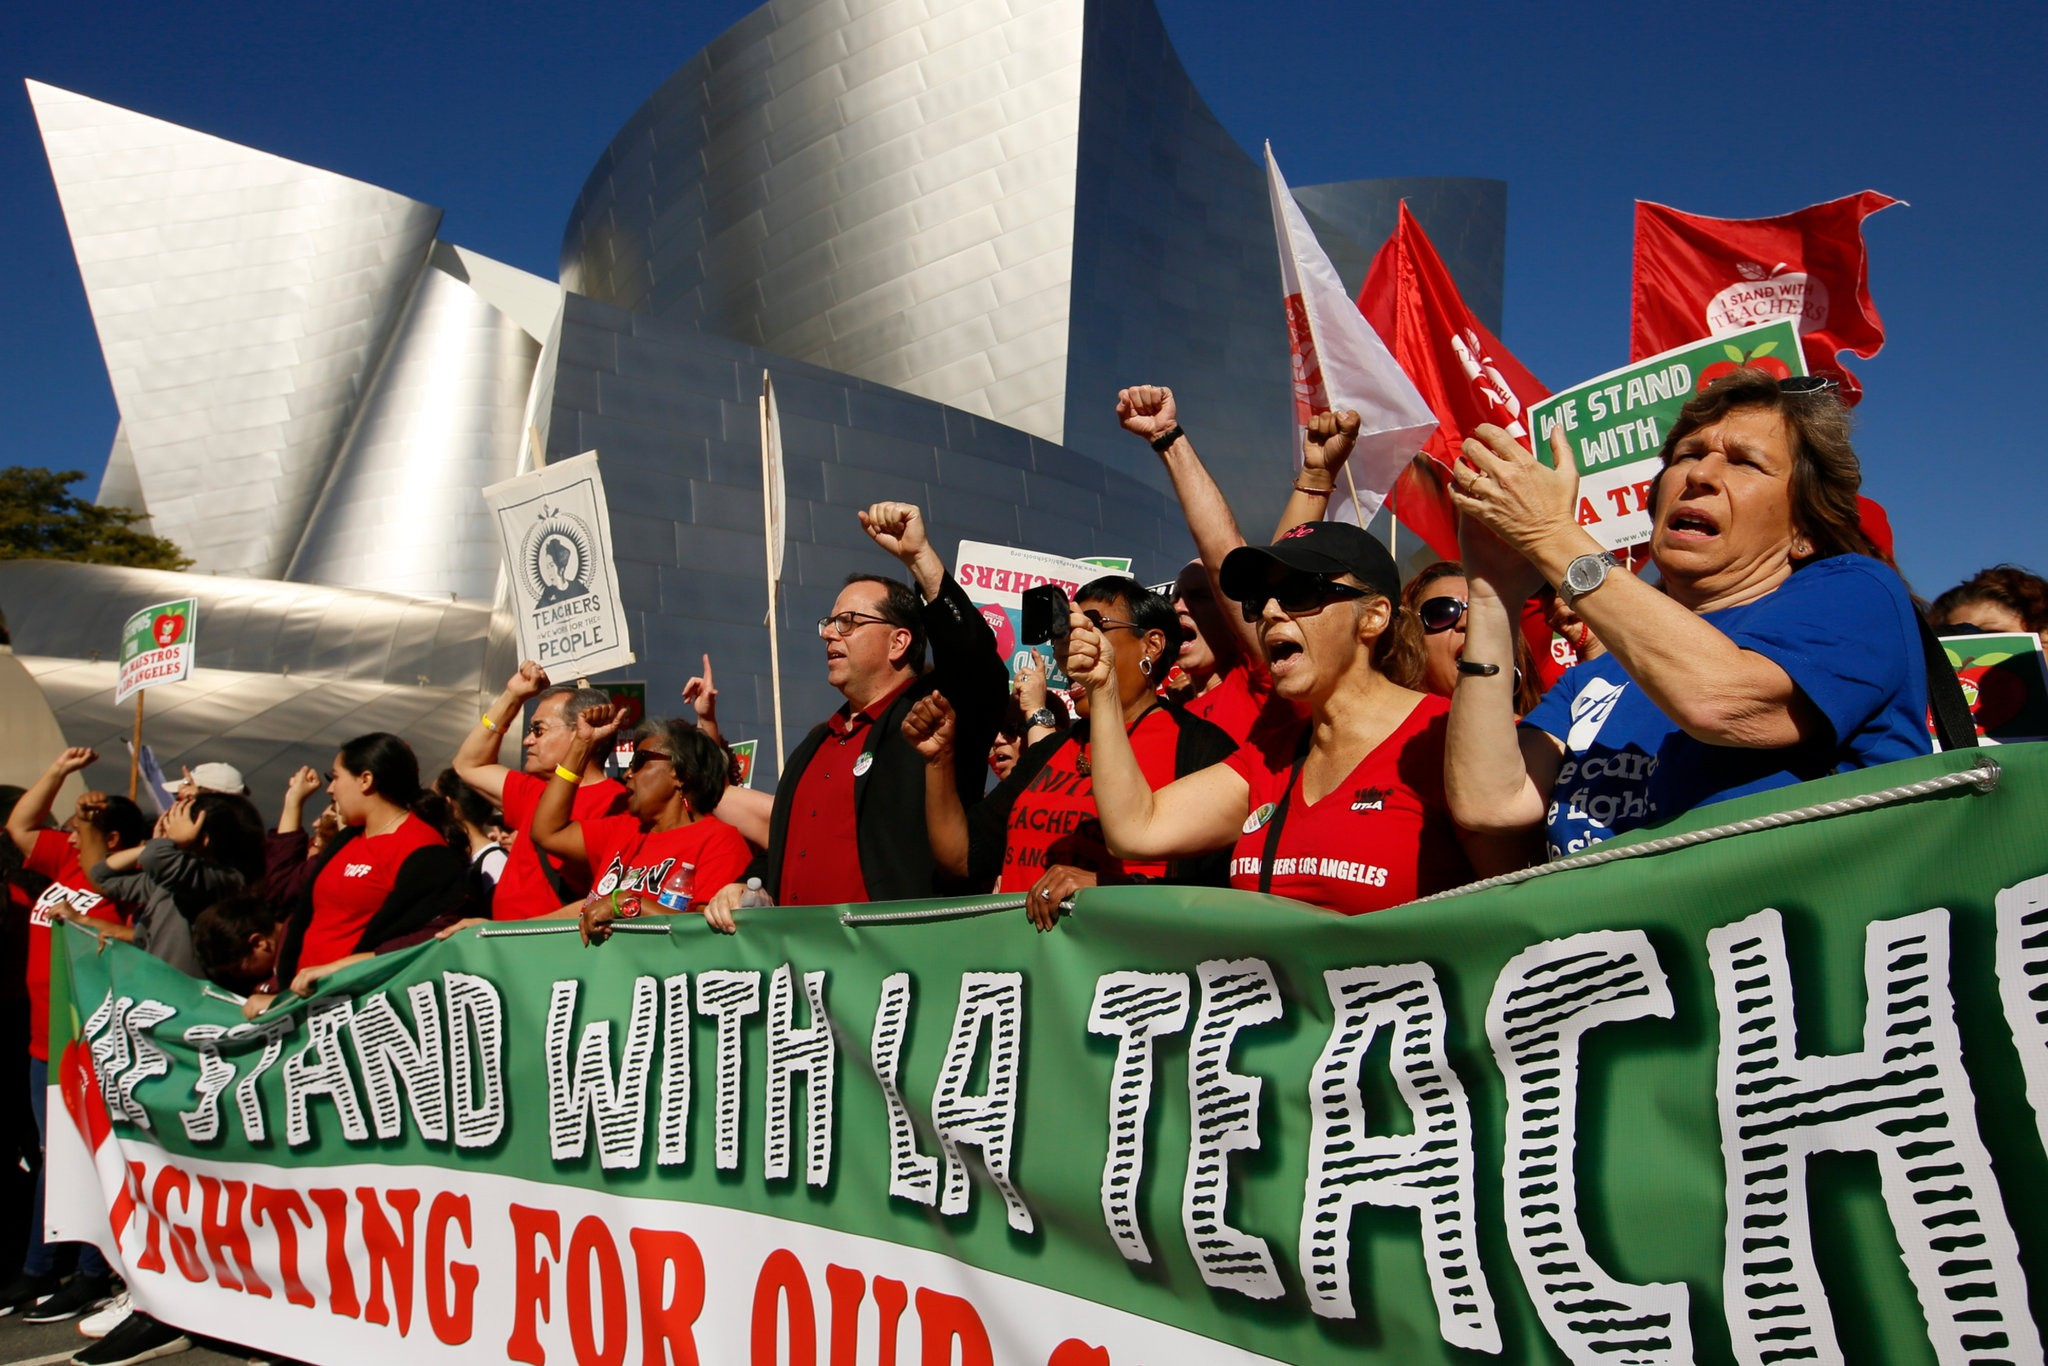 Alex Caputo-Pearl, the president of United Teachers Los Angeles, center, at a rally in December. Teachers in the Los Angeles Unified School District are expected to strike this week. Credit Damian Dovarganes/Associated Press